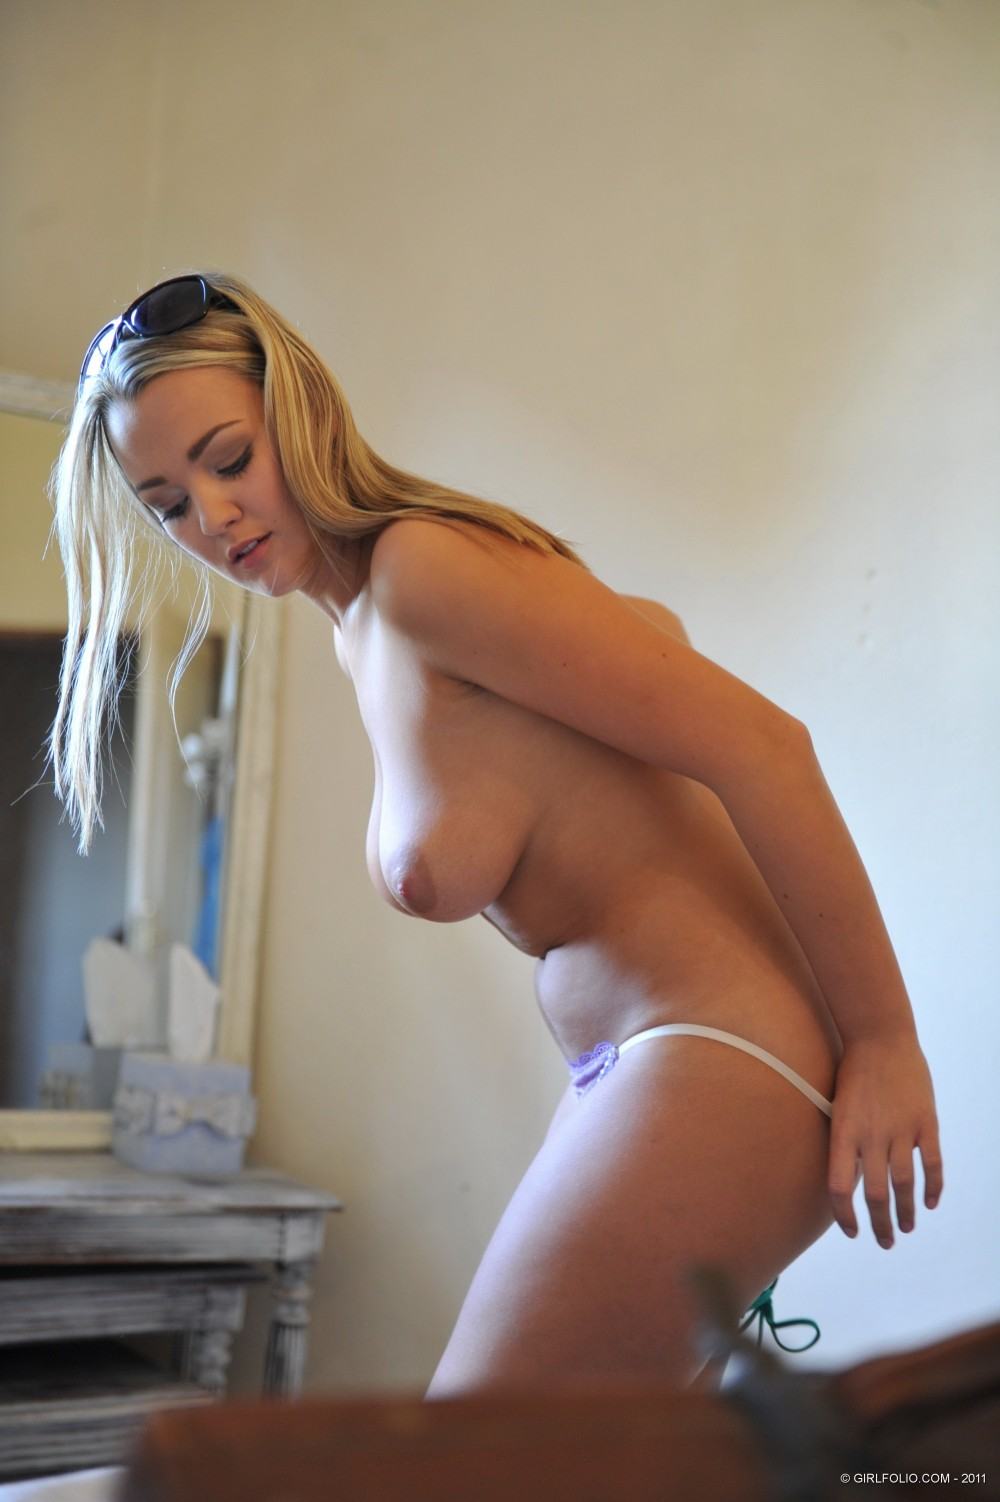 nude women home alone video